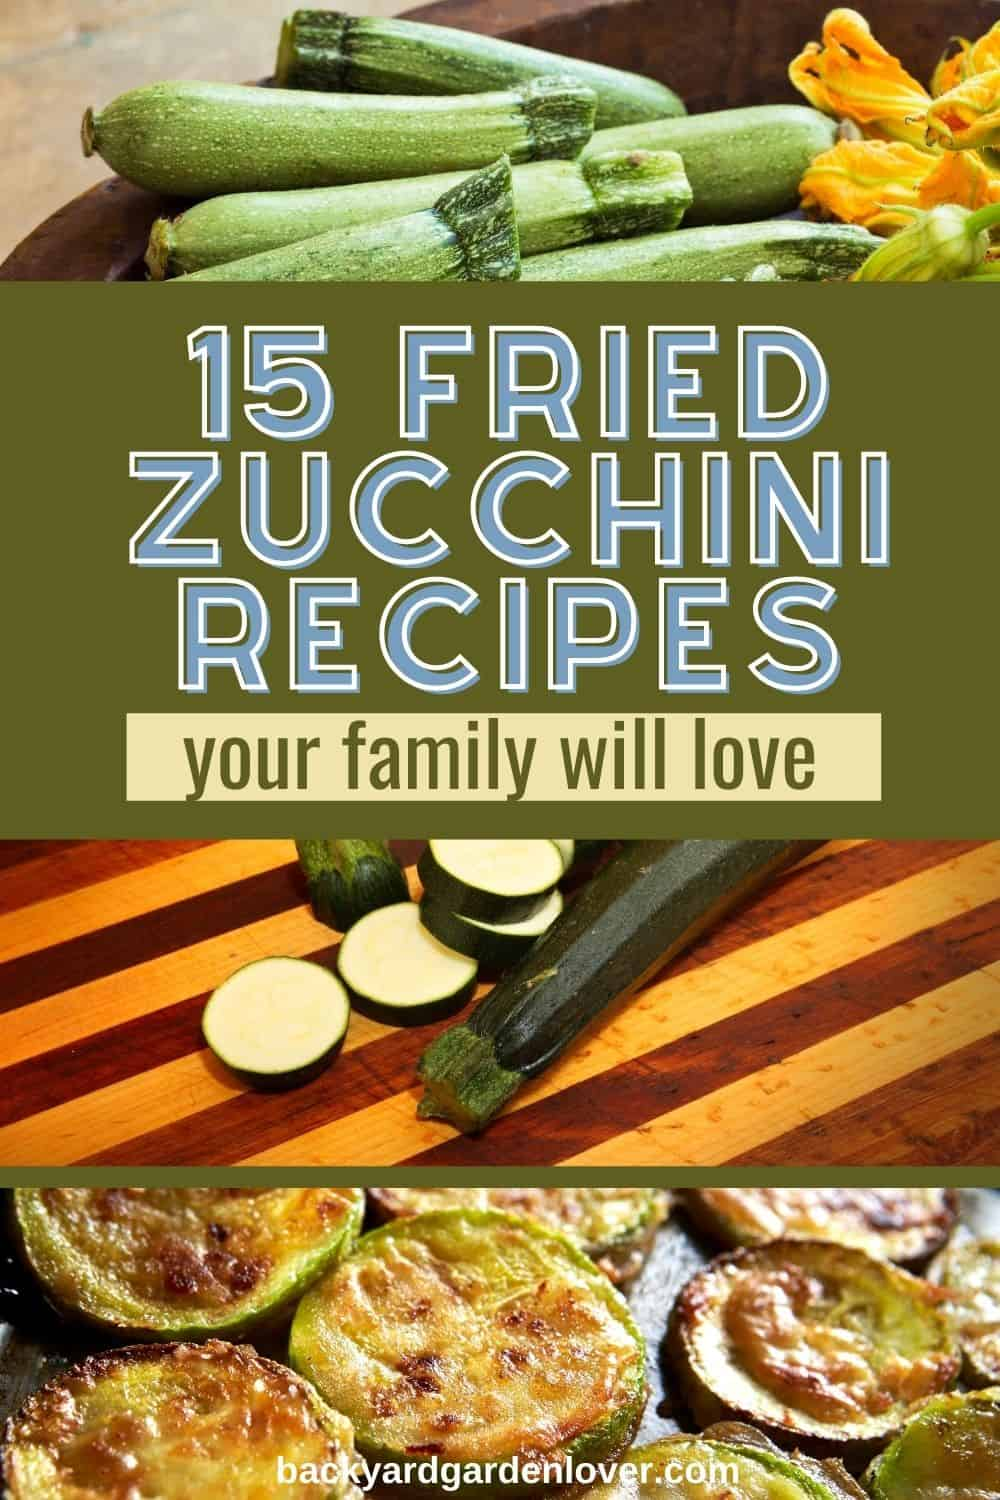 Fried zucchini recipes your family will love - Pinterest Image